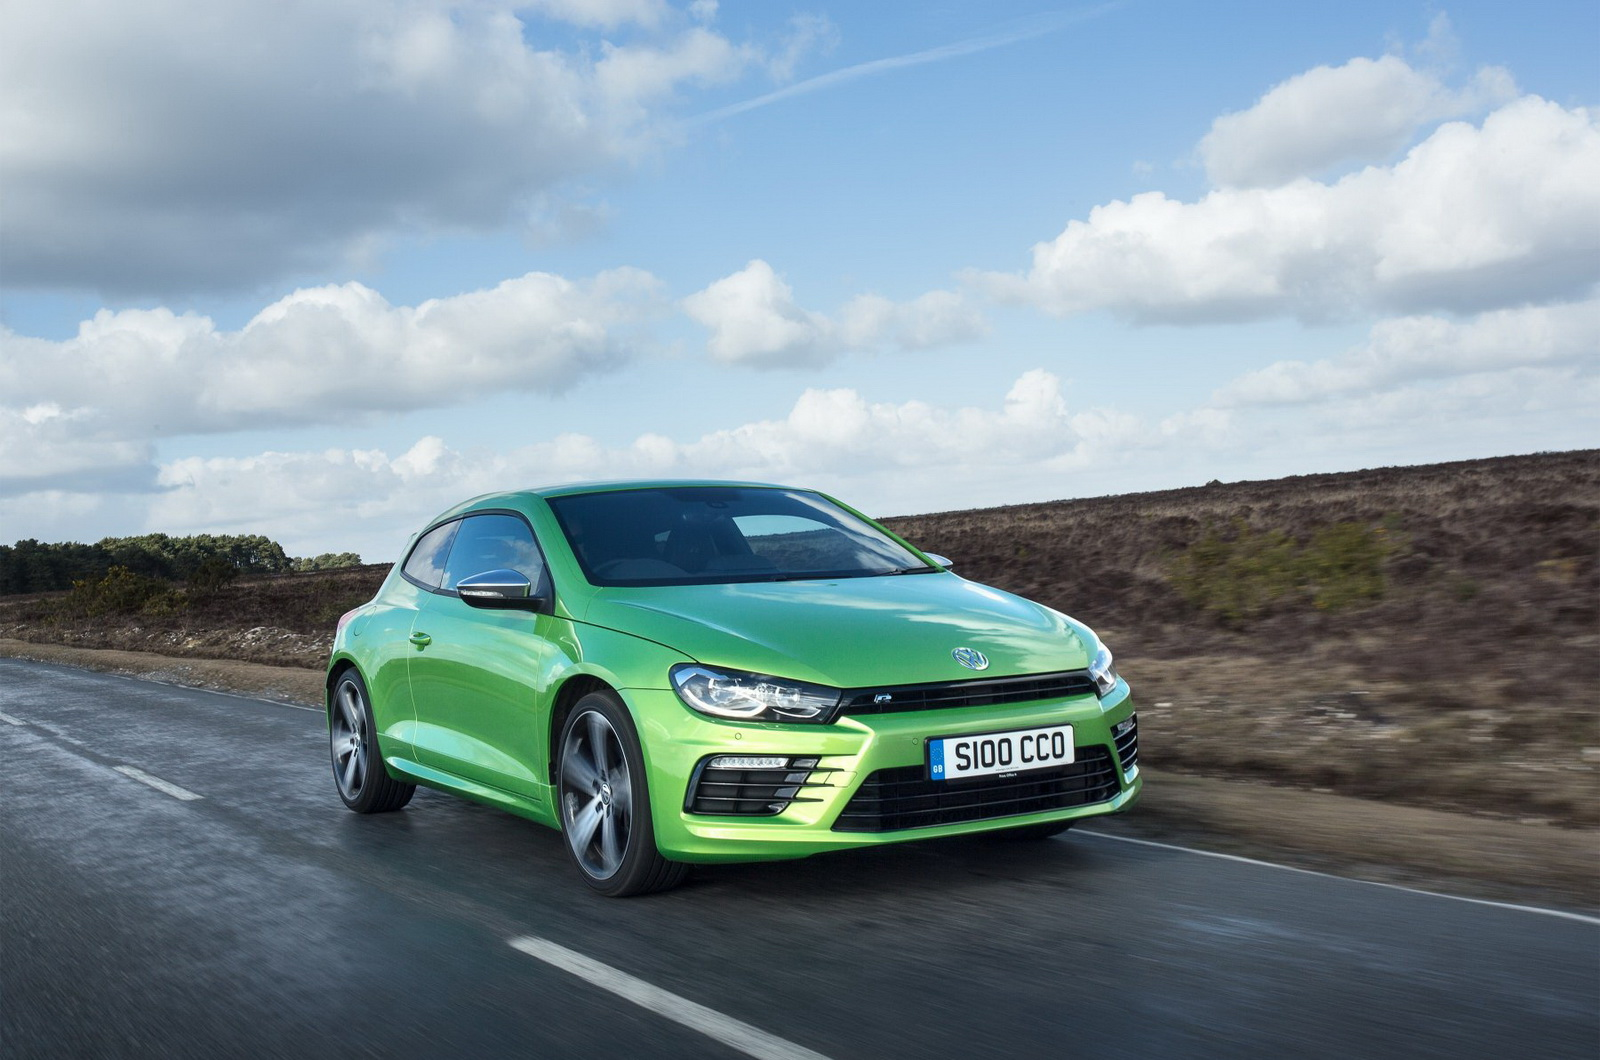 vw scirocco r driven the 280hp unsung hero is still around carscoops. Black Bedroom Furniture Sets. Home Design Ideas